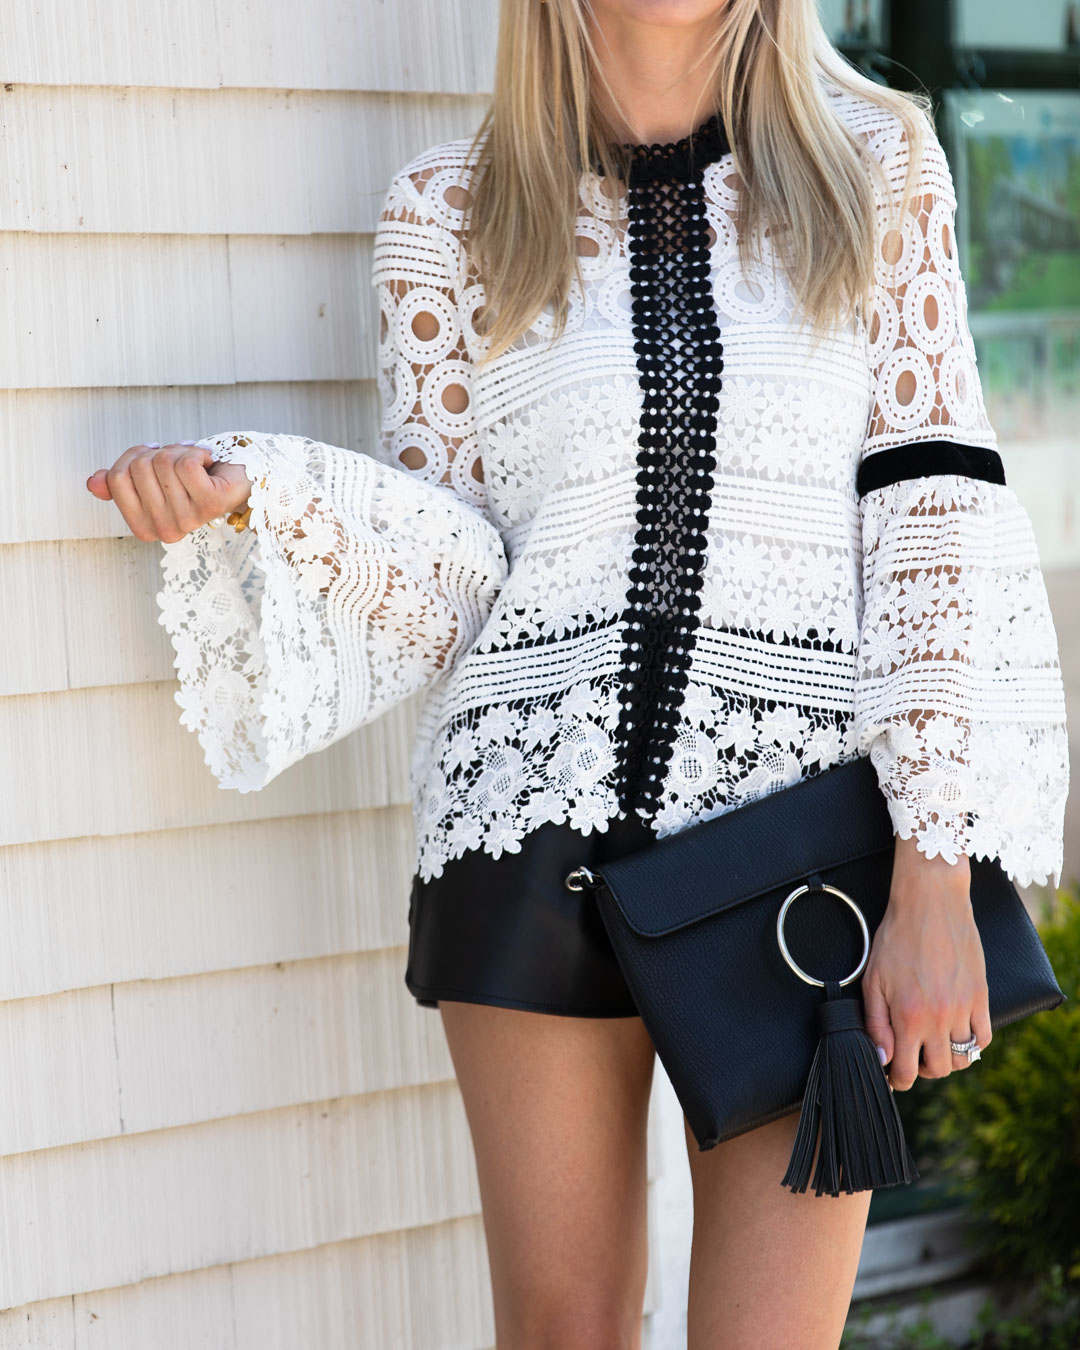 Chicwish Black and White Lace Top